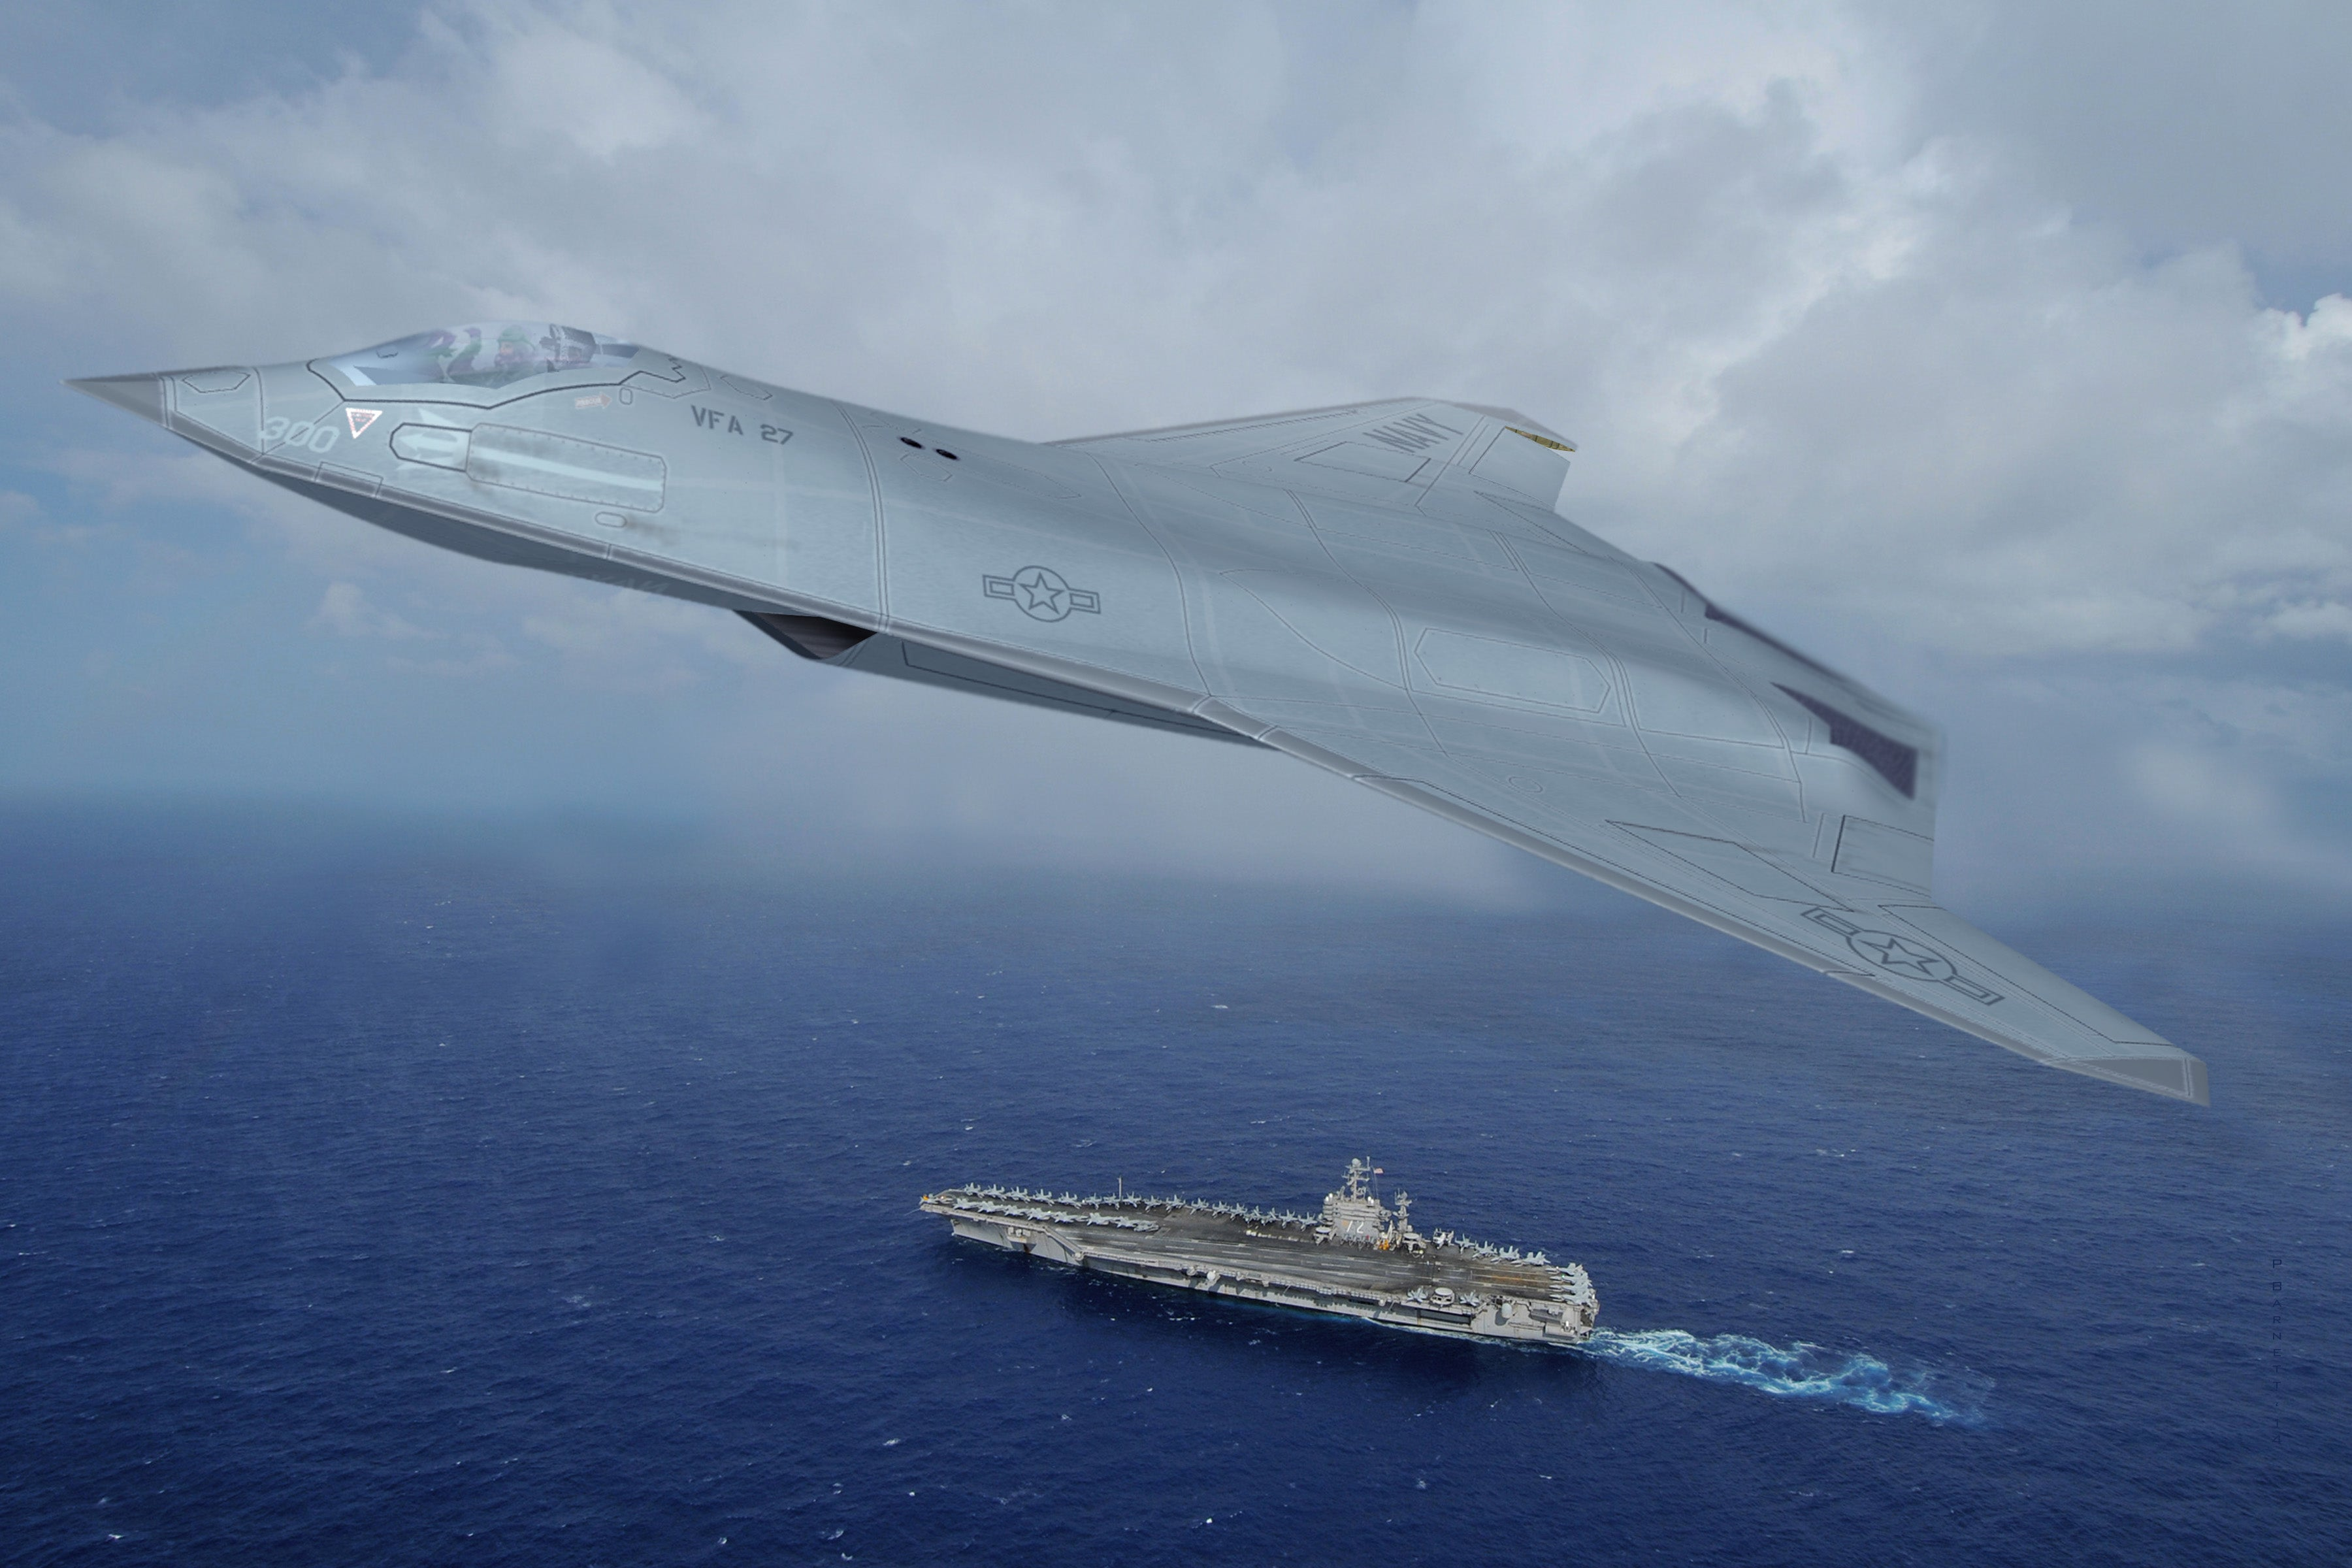 With the recent advances in technology and design aircraft concepts - The Pentagon S 6th Generation Fighter May Be Stealthy And Will Likely Have Next Generation Computers Electronic Warfare Technology Speed